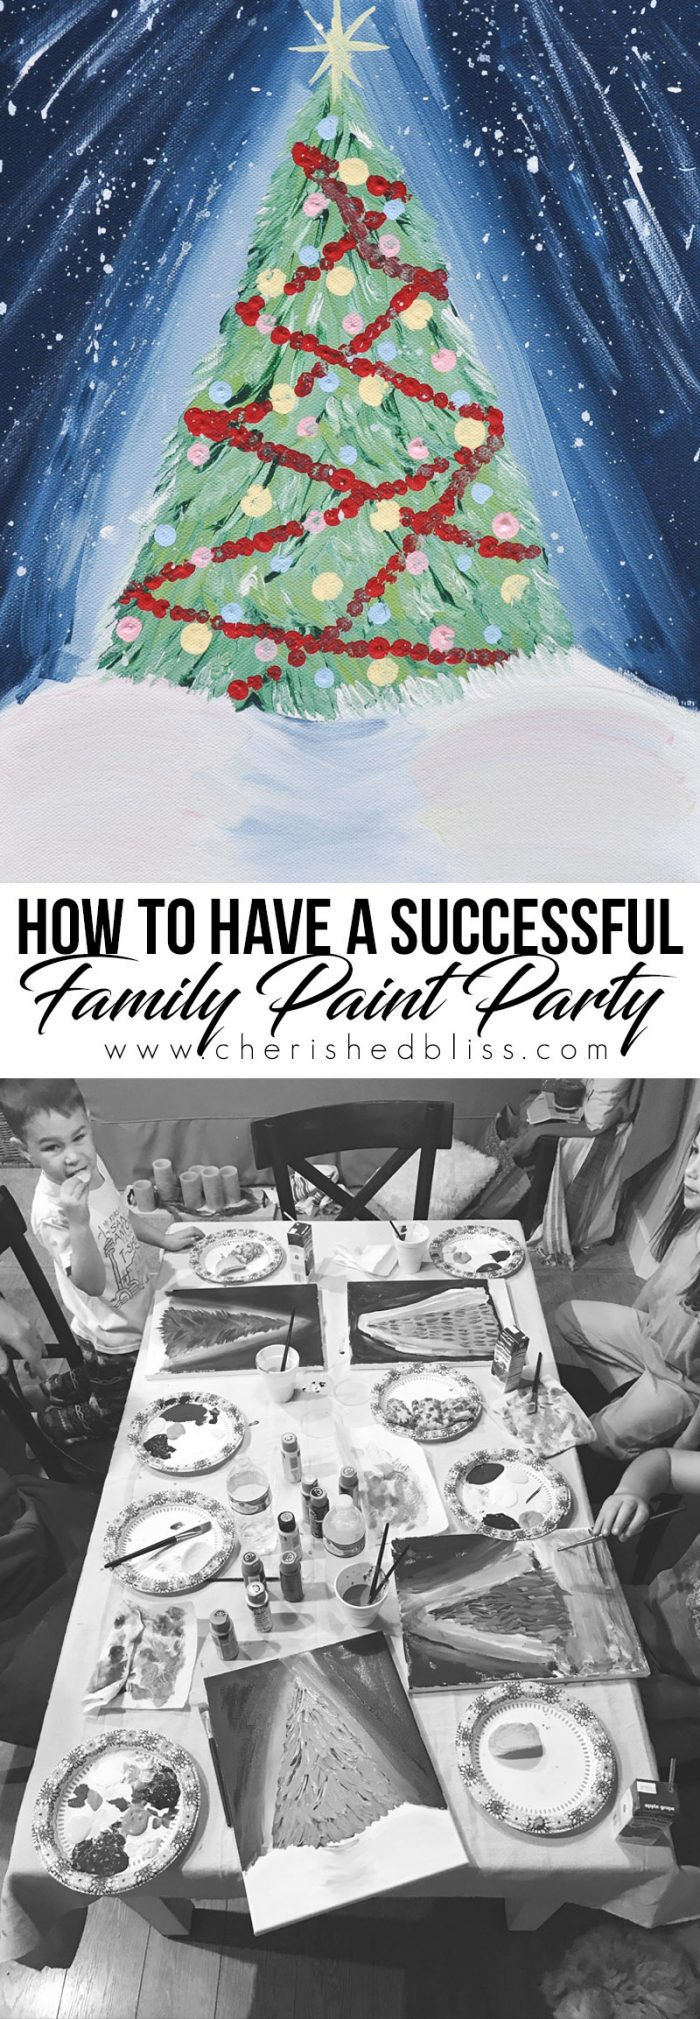 Create special memories by joining this fun Paint With Plaid Night. These tips will help provide a Successful Family Paint Party!